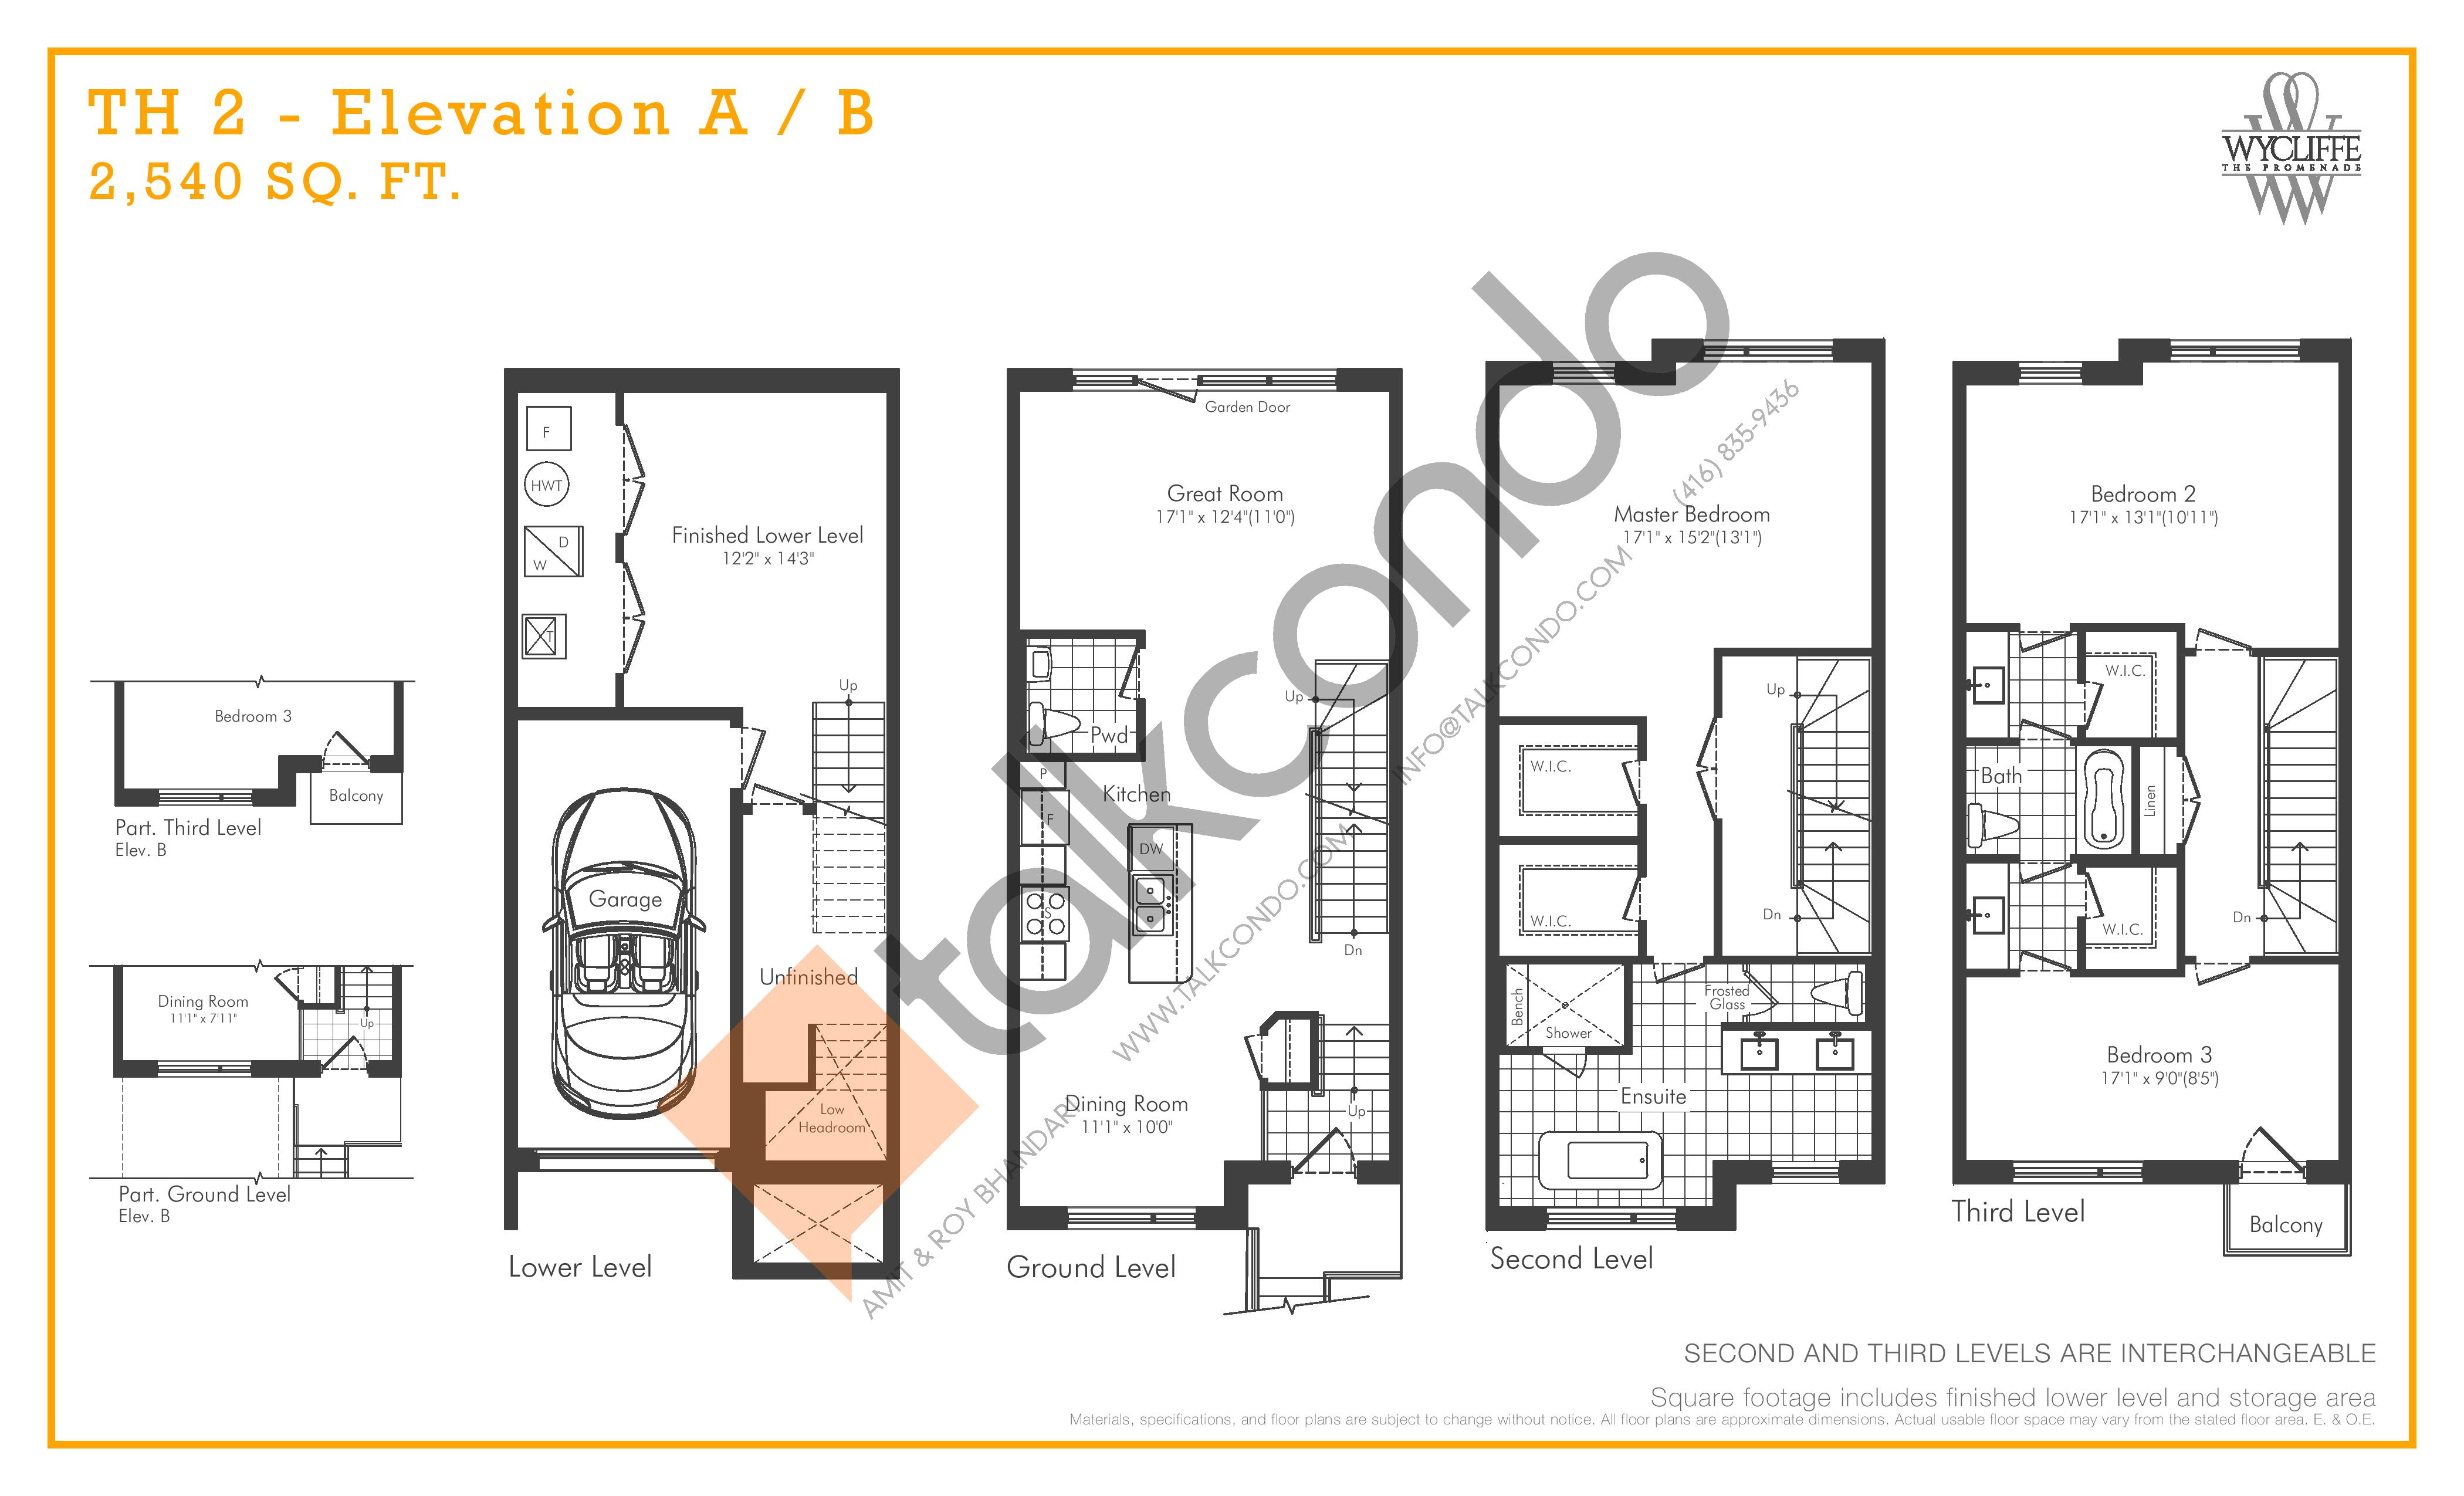 TH 2 - Elevation A/B Floor Plan at Wycliffe at the Promenade - 2540 sq.ft